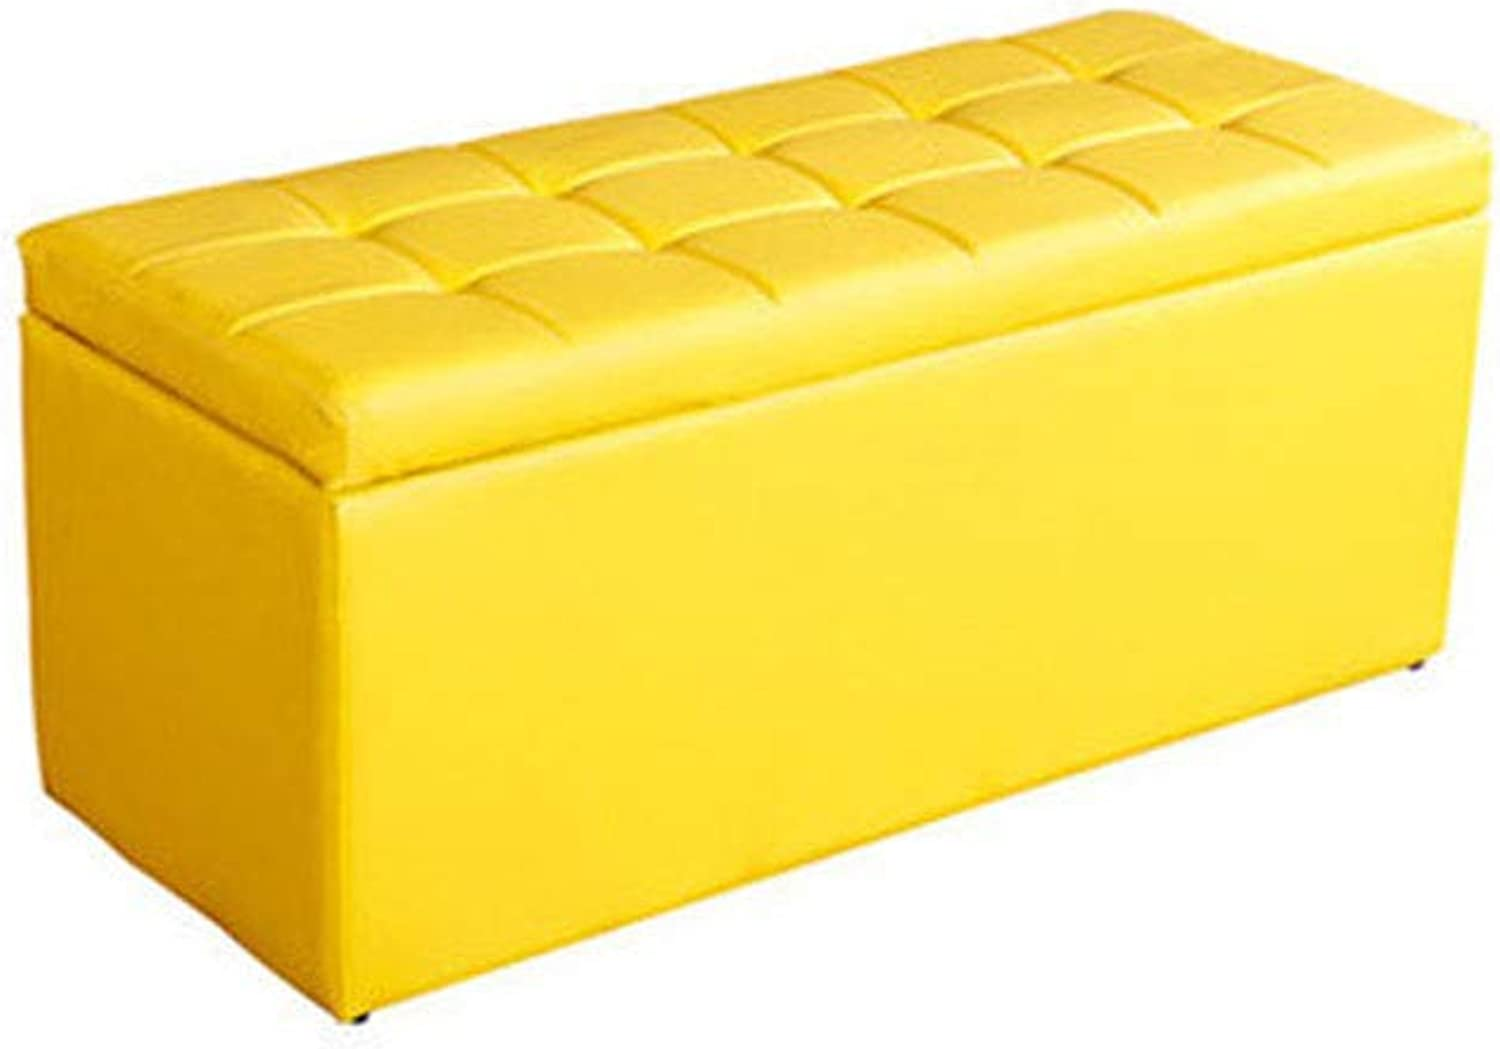 Sofa shoes Bench, Artificial Leather and Square Wooden Support Frame Multi-Function Storage Box for Commercial Clothing Store, shoes Store (color   Yellow, Size   60  40  40cm)